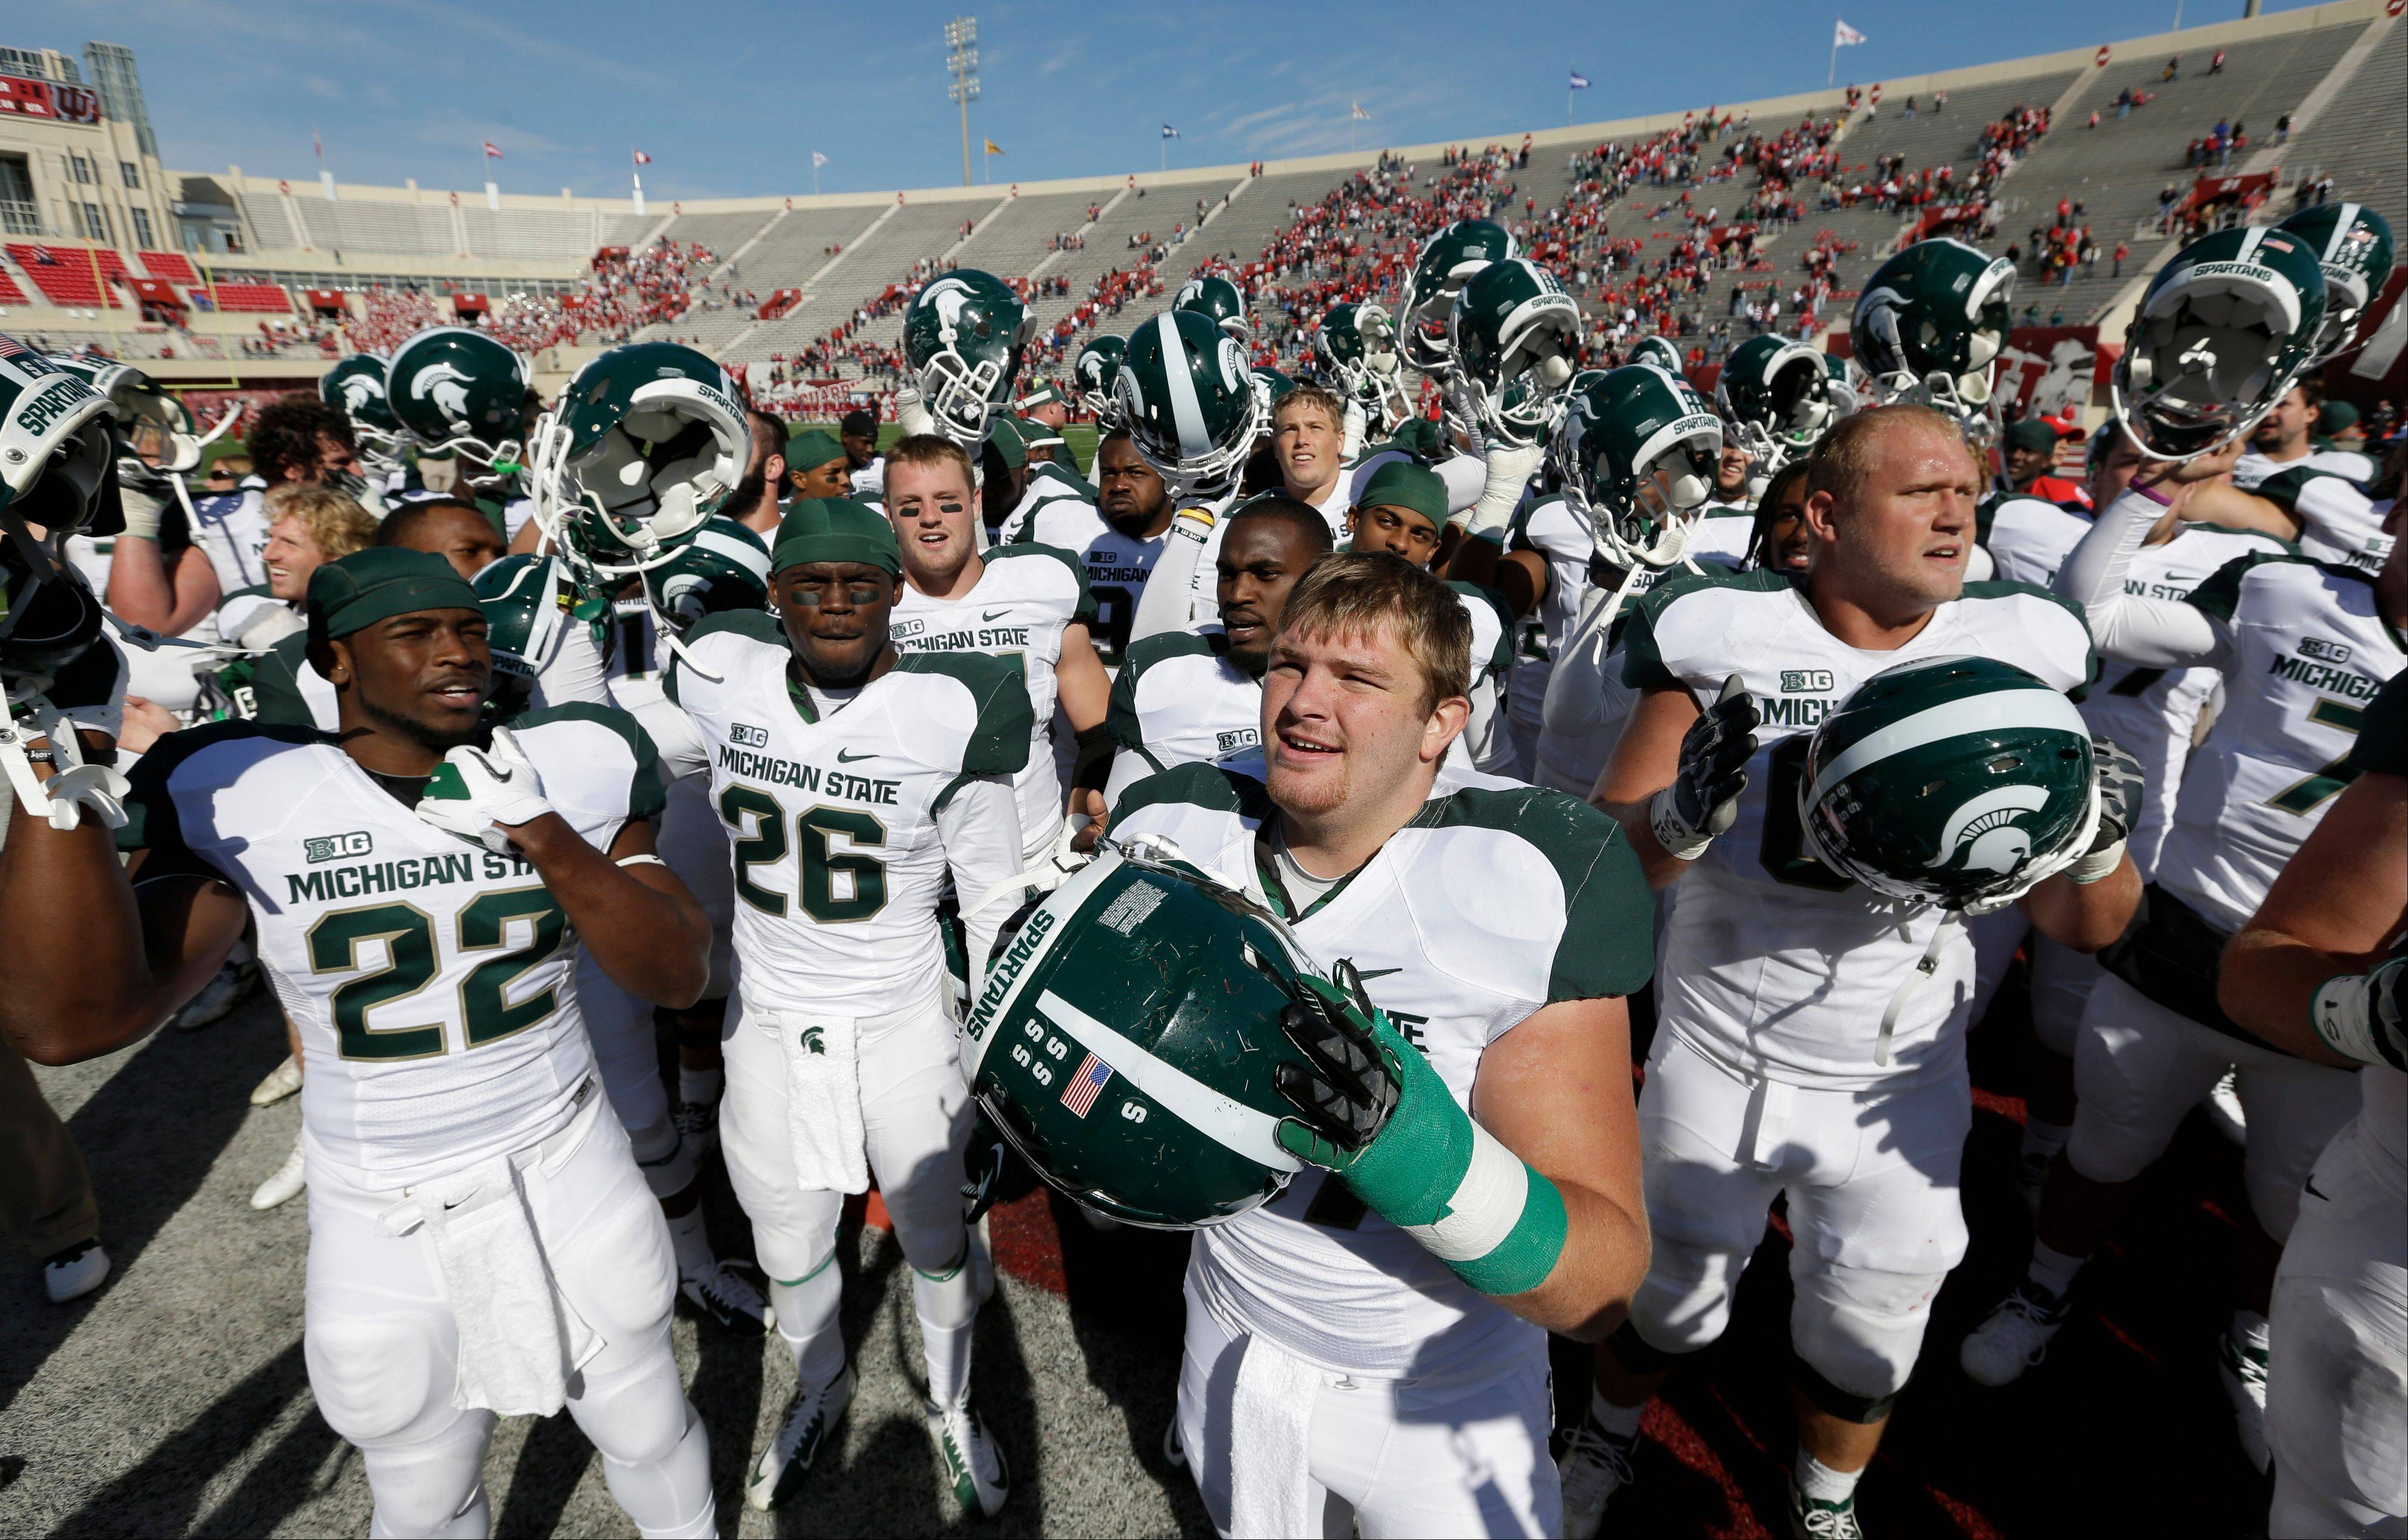 Michigan State fullback Trevon Pendleton, front, and teammates celebrate after the Spartans defeated Indiana 31-27 last Saturday in Bloomington, Ind.